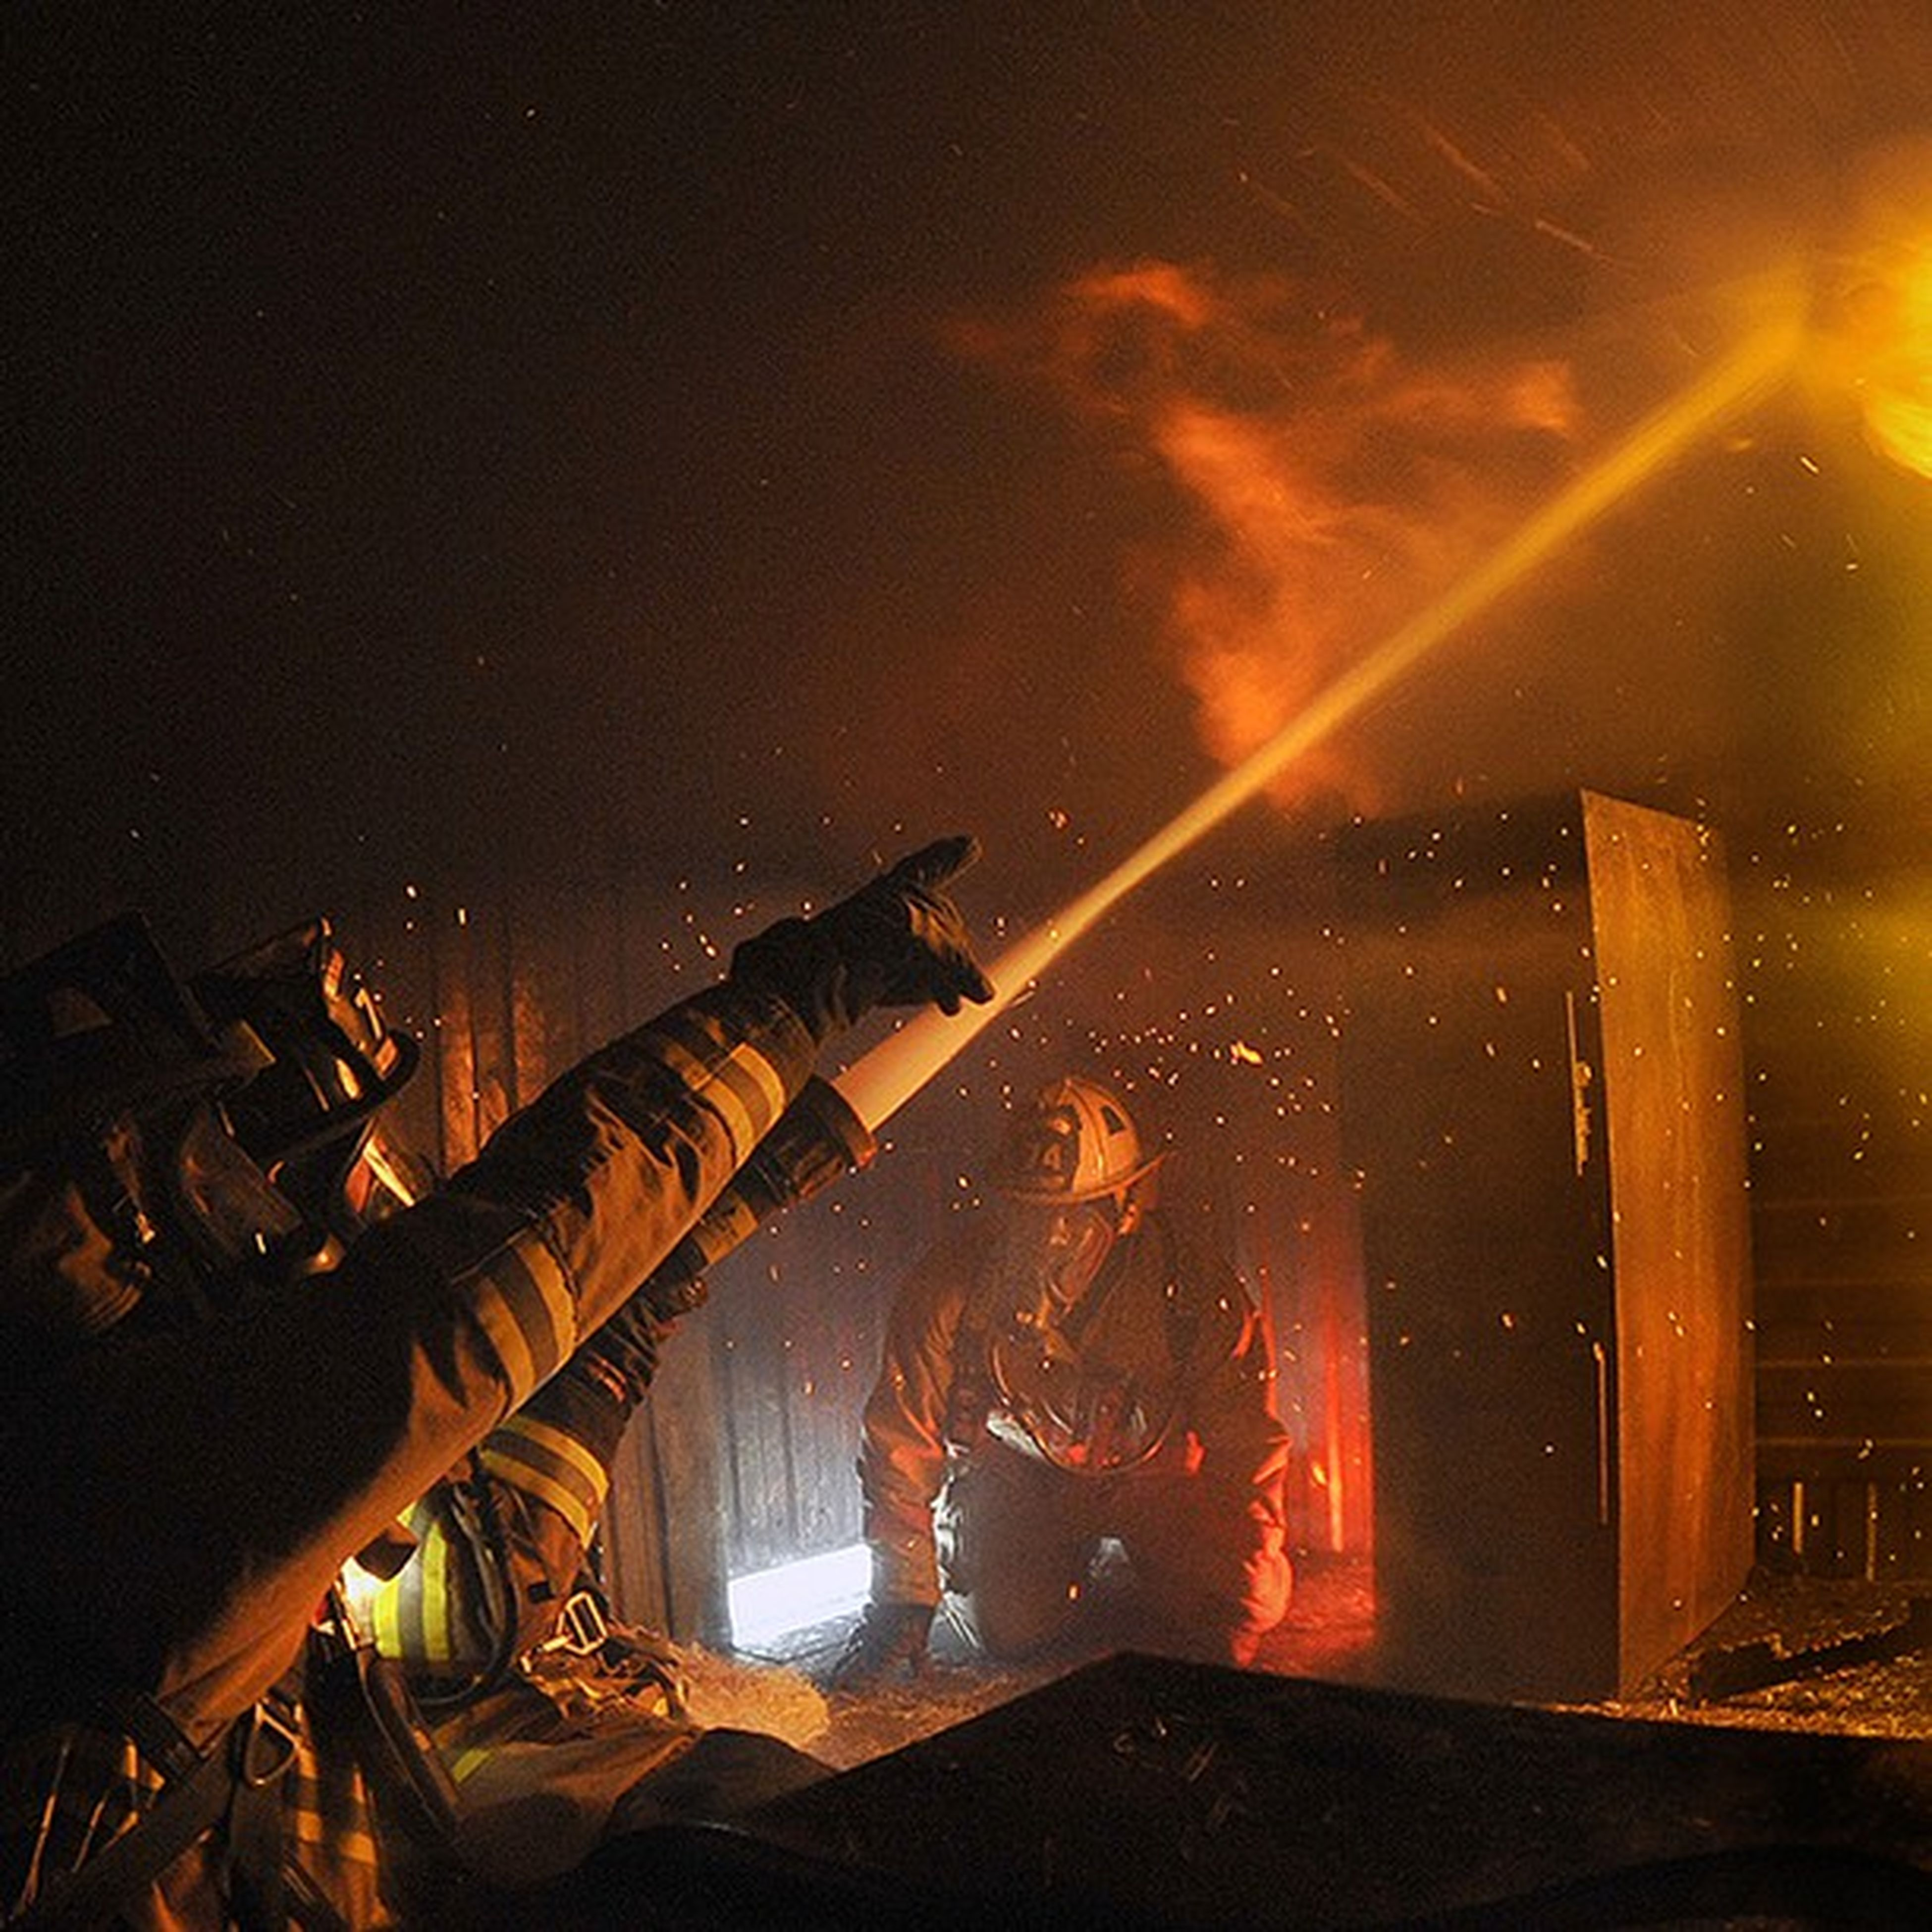 FavoritePhotos Firefighters practice fire Suppression tactics in a live Fire training building. @firefightersunited @officialfdny Full size photo here: http://flic.kr/p/brgPTr airforce usaf military photos photography unitedstates us usa america photoftheday heat @nikontop